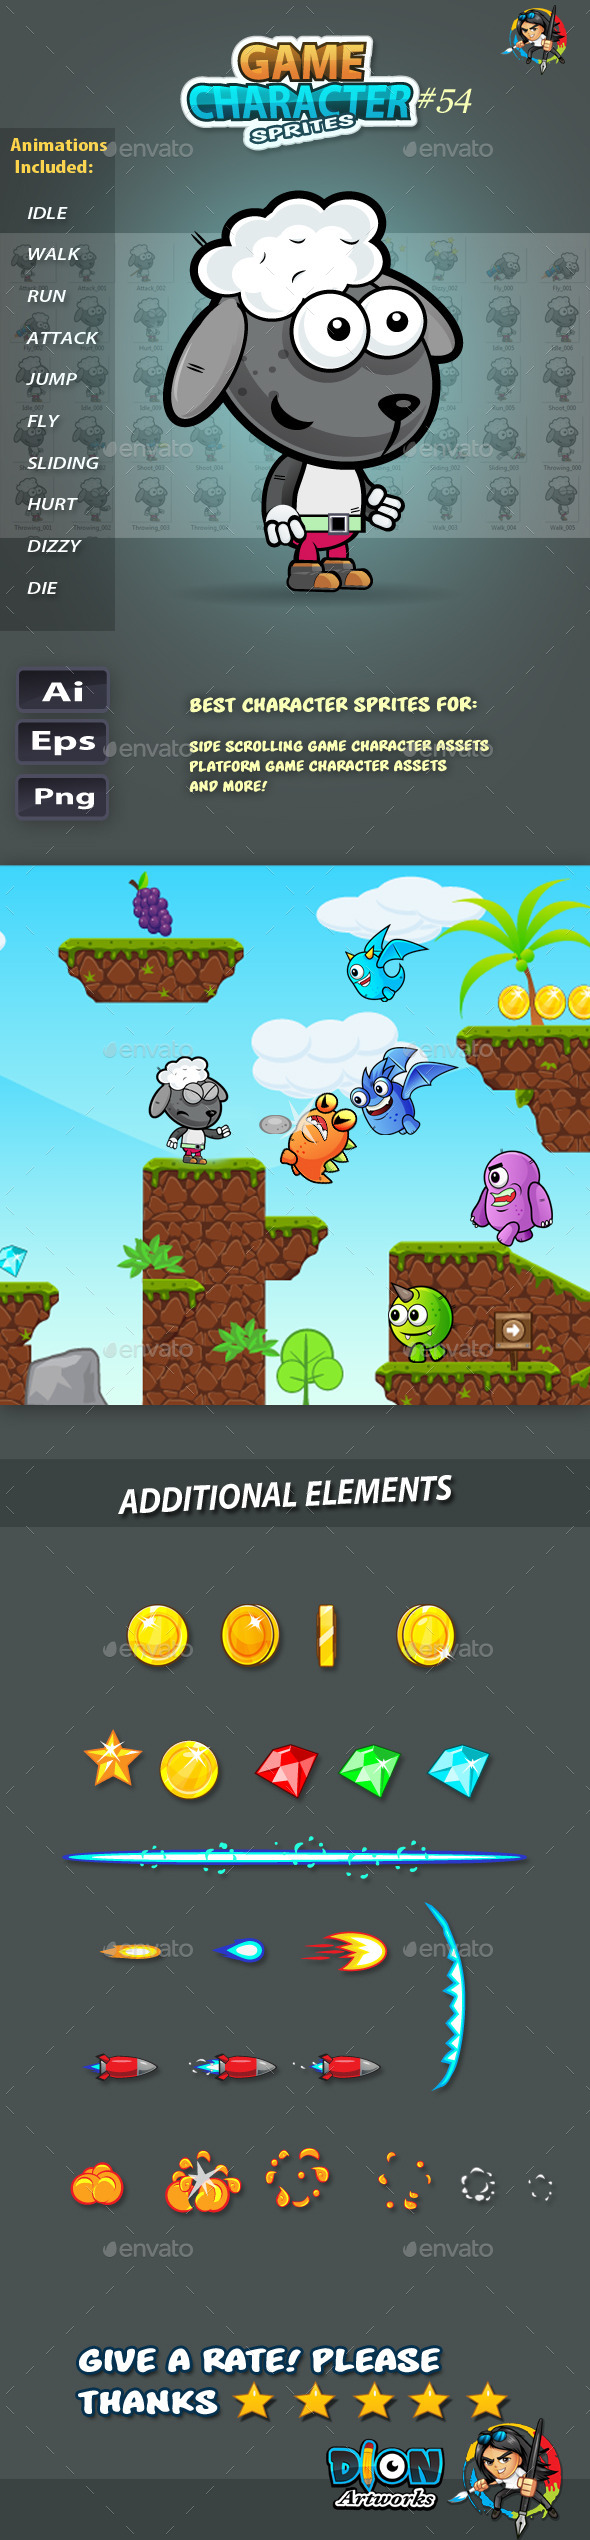 GraphicRiver Sheep 2D Game Character Sprites 54 11765985